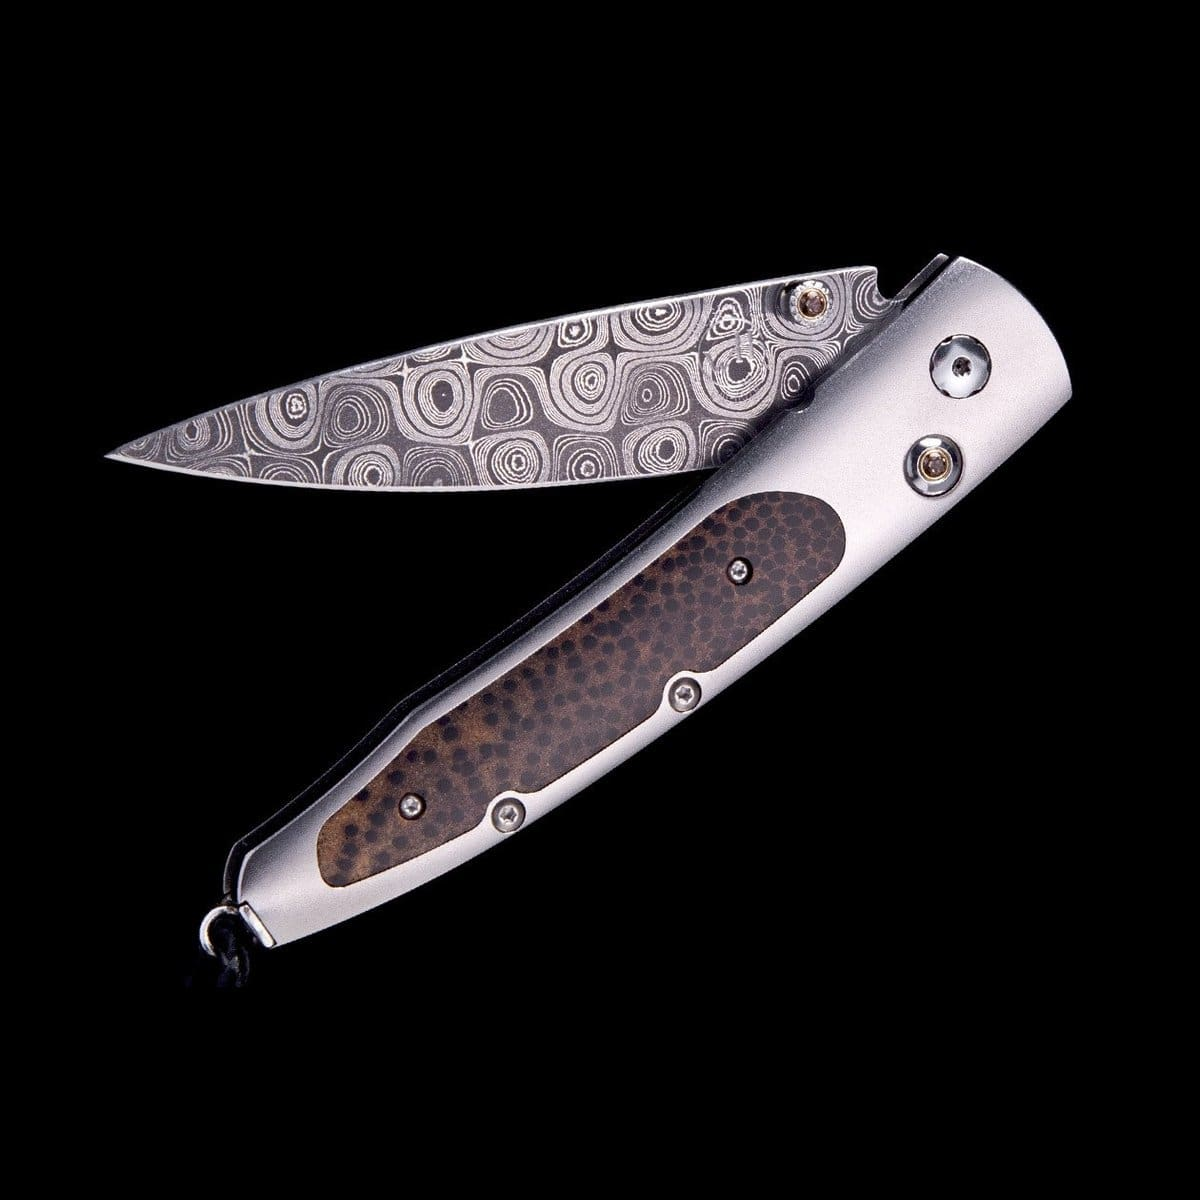 Lancet 'Palm Island' Limited Edition Knife - B10 'PALM ISLAND' - William Henry